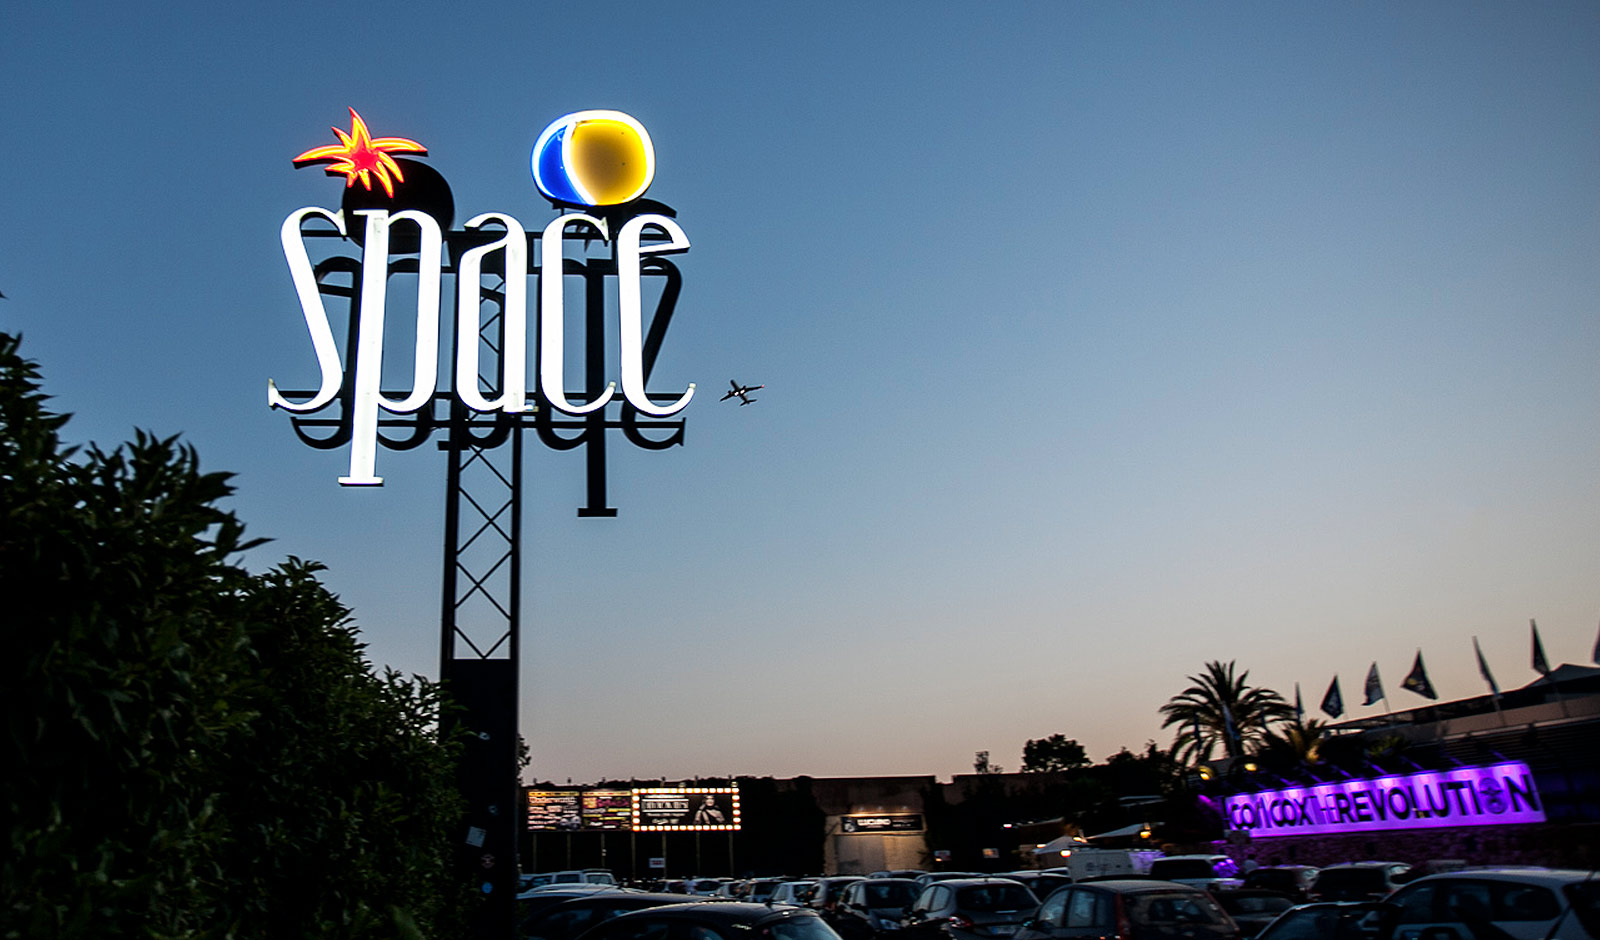 tv2beat's audiovisual production for Space Ibiza